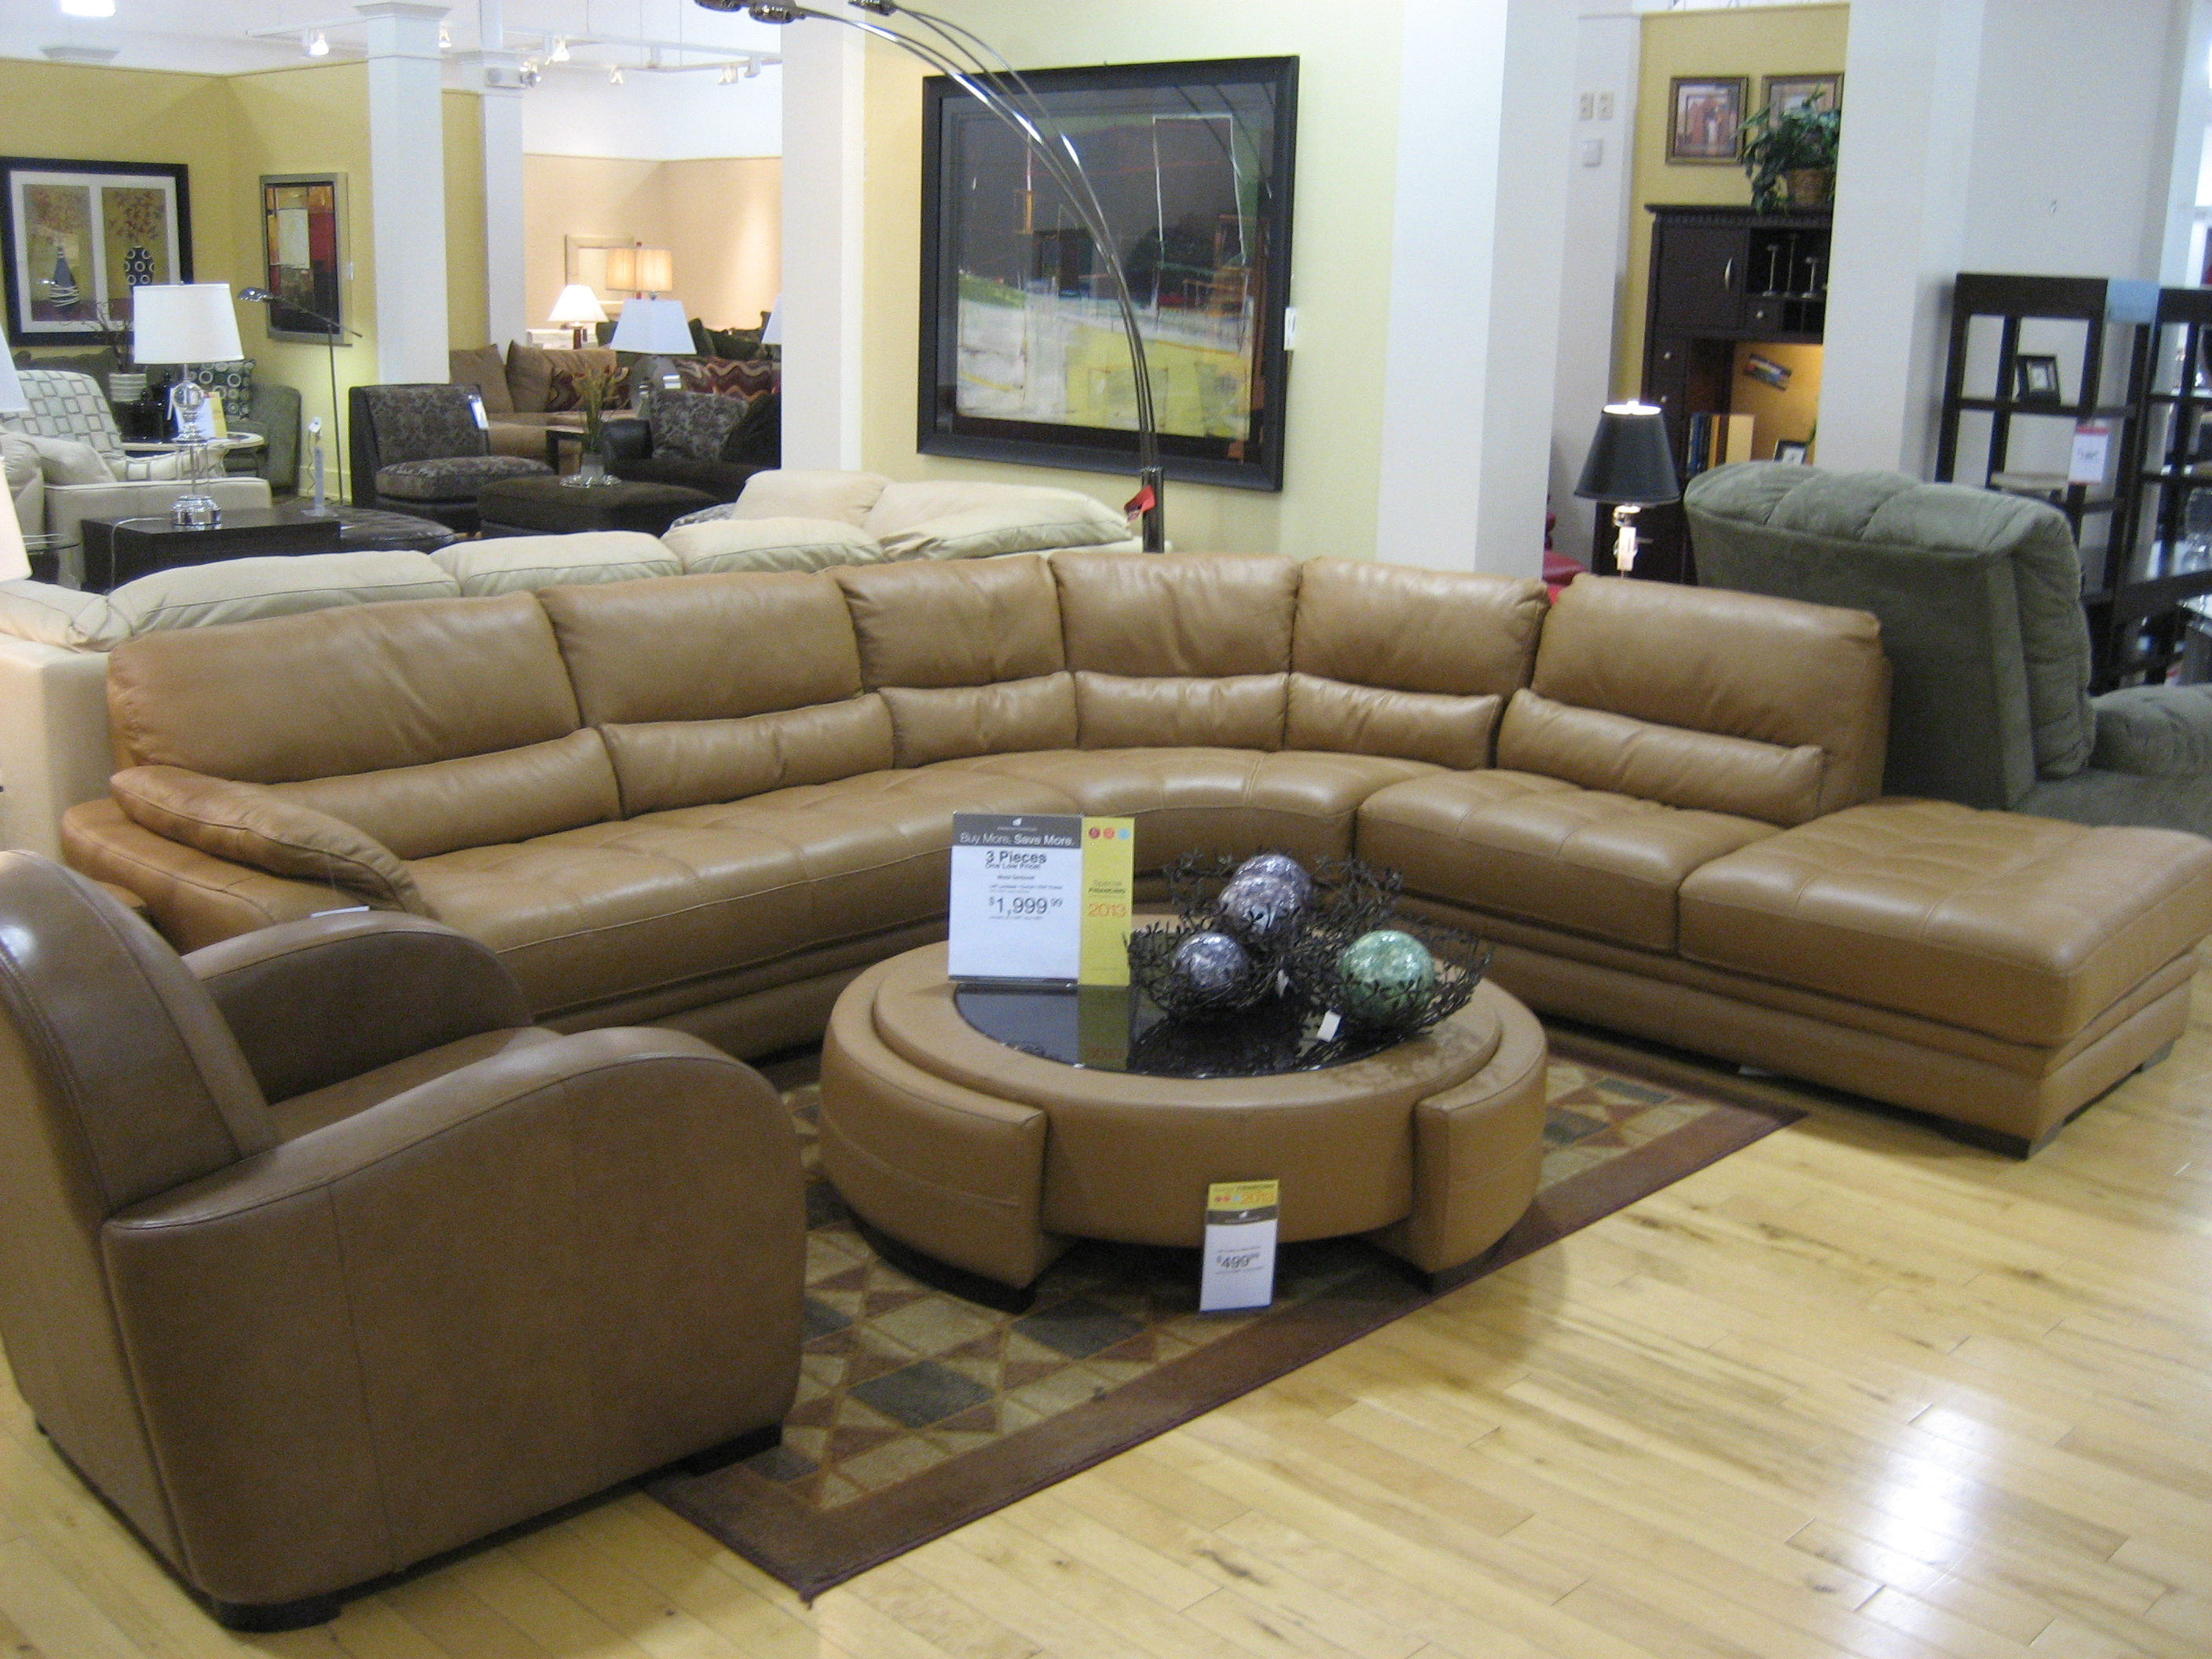 File:Living Room Couch (2284467148)